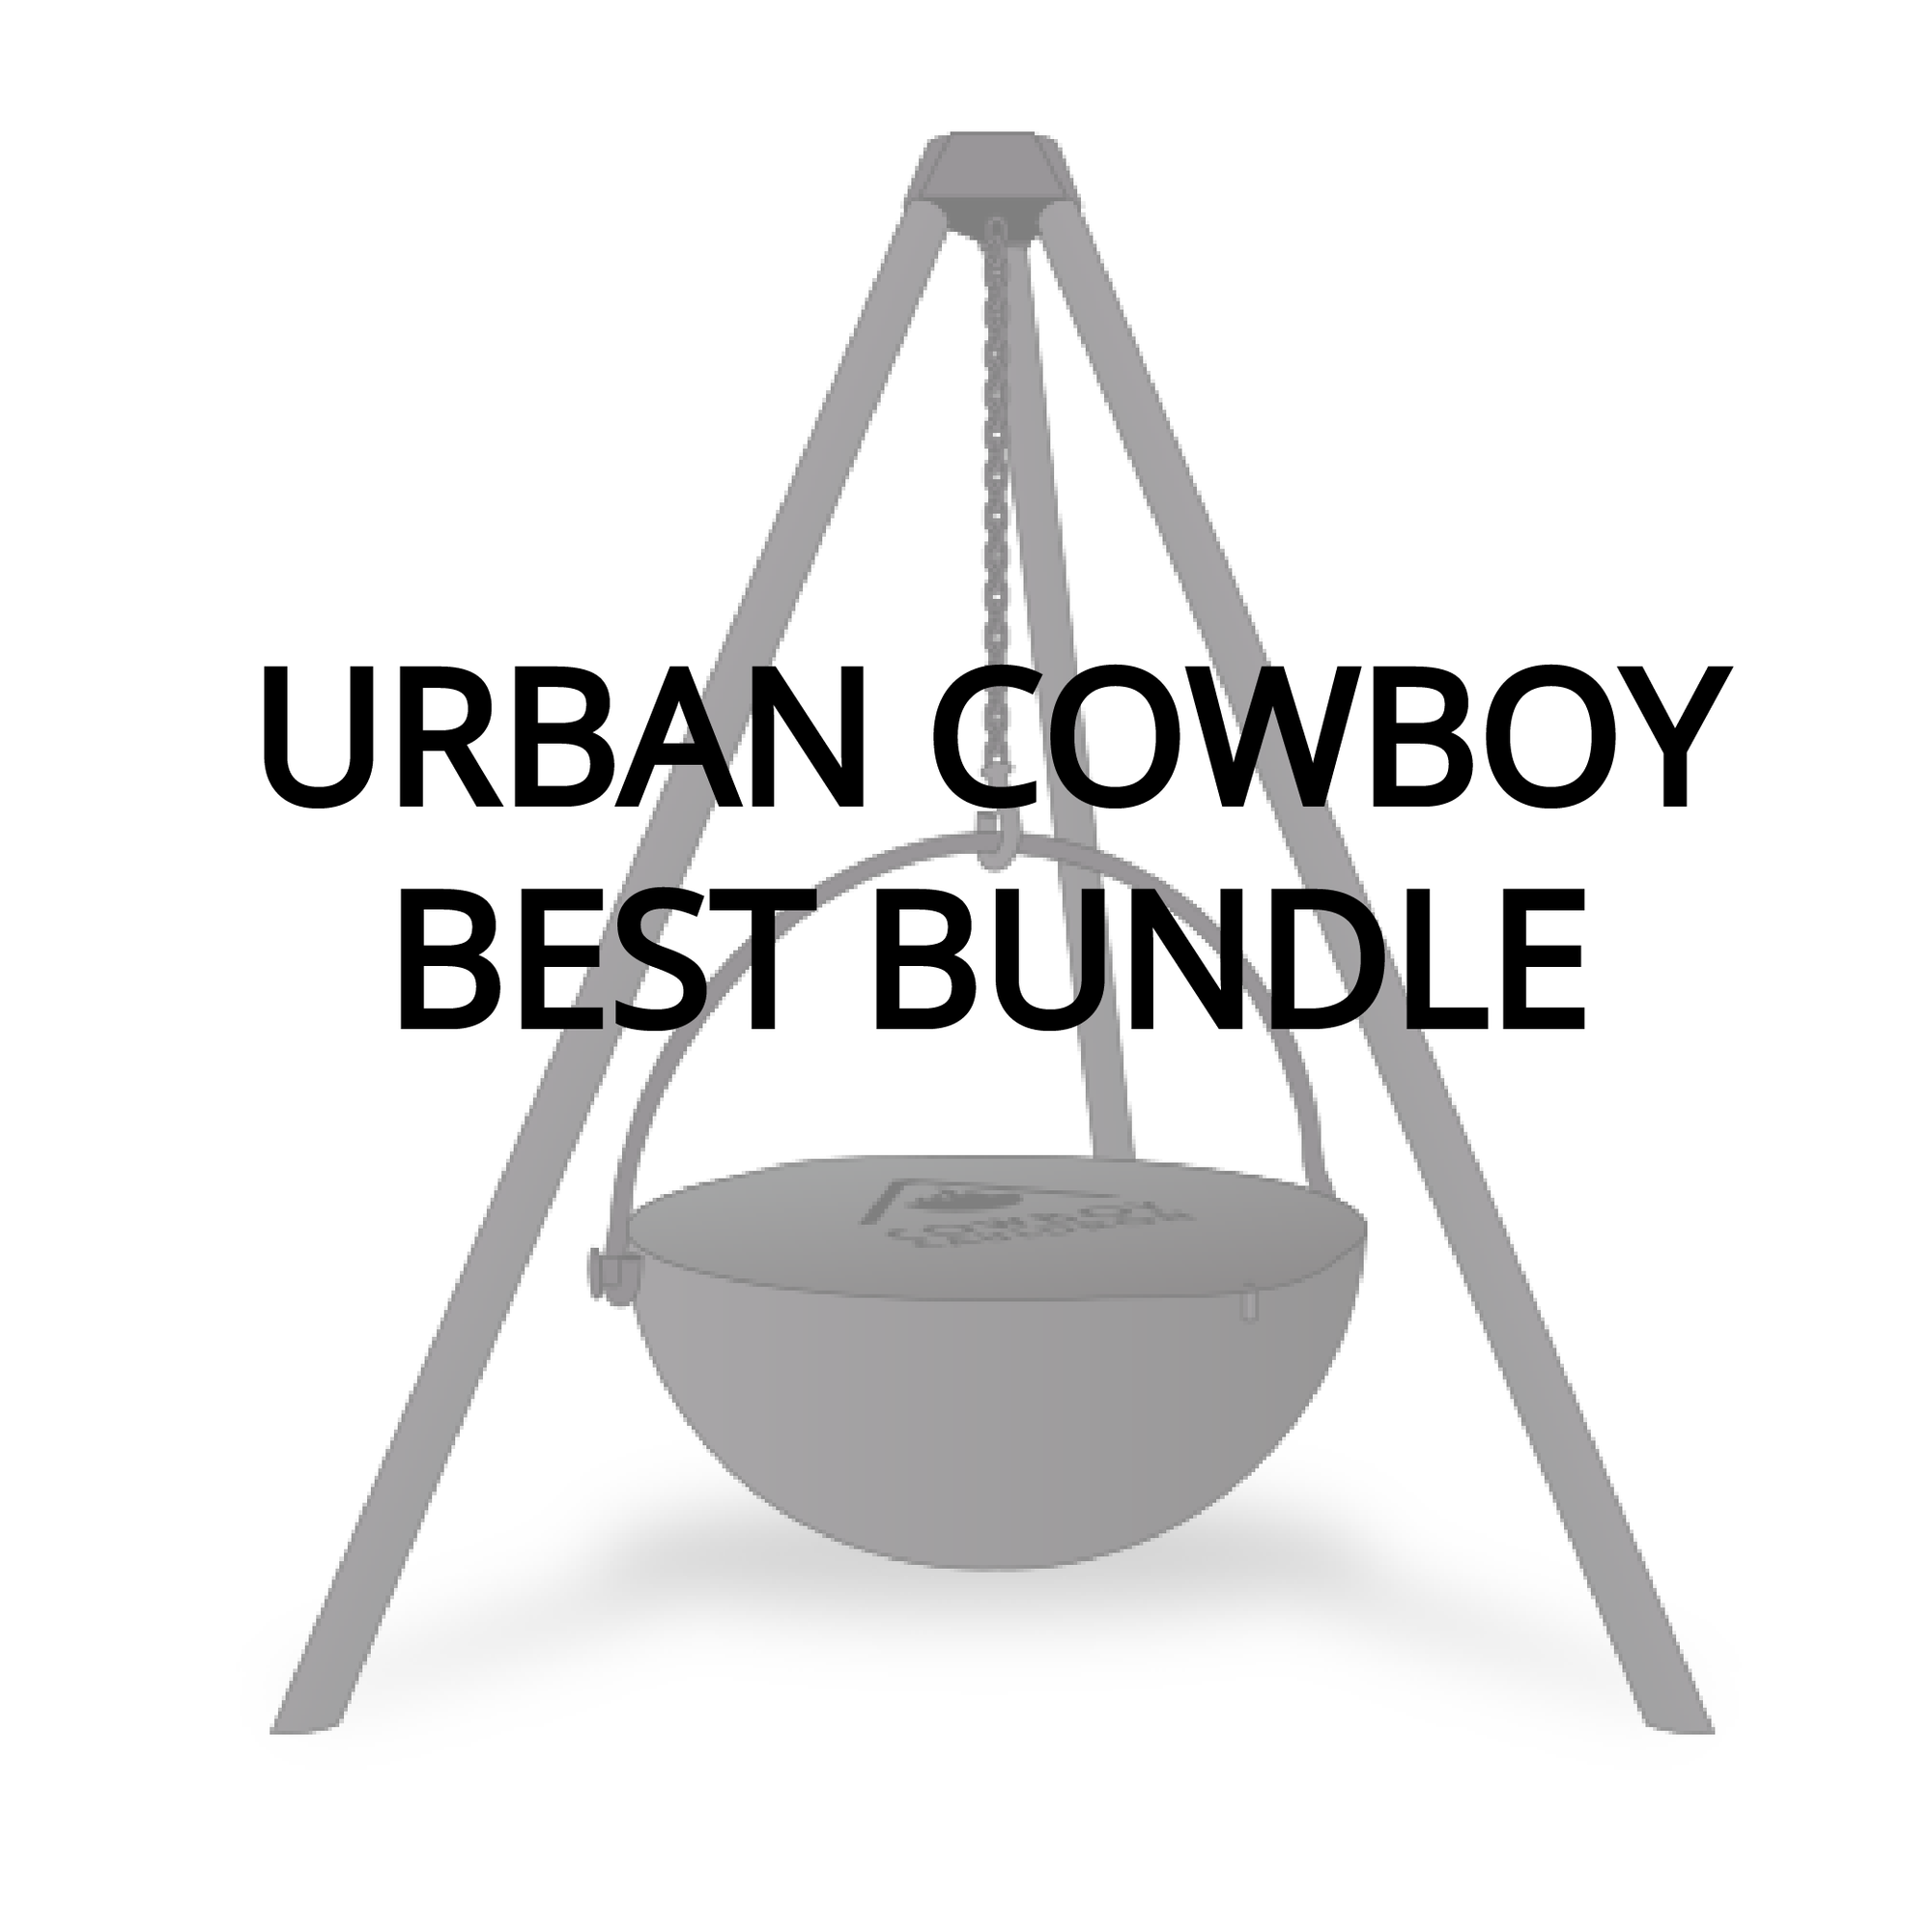 The Urban Cowboy - Best Bundle